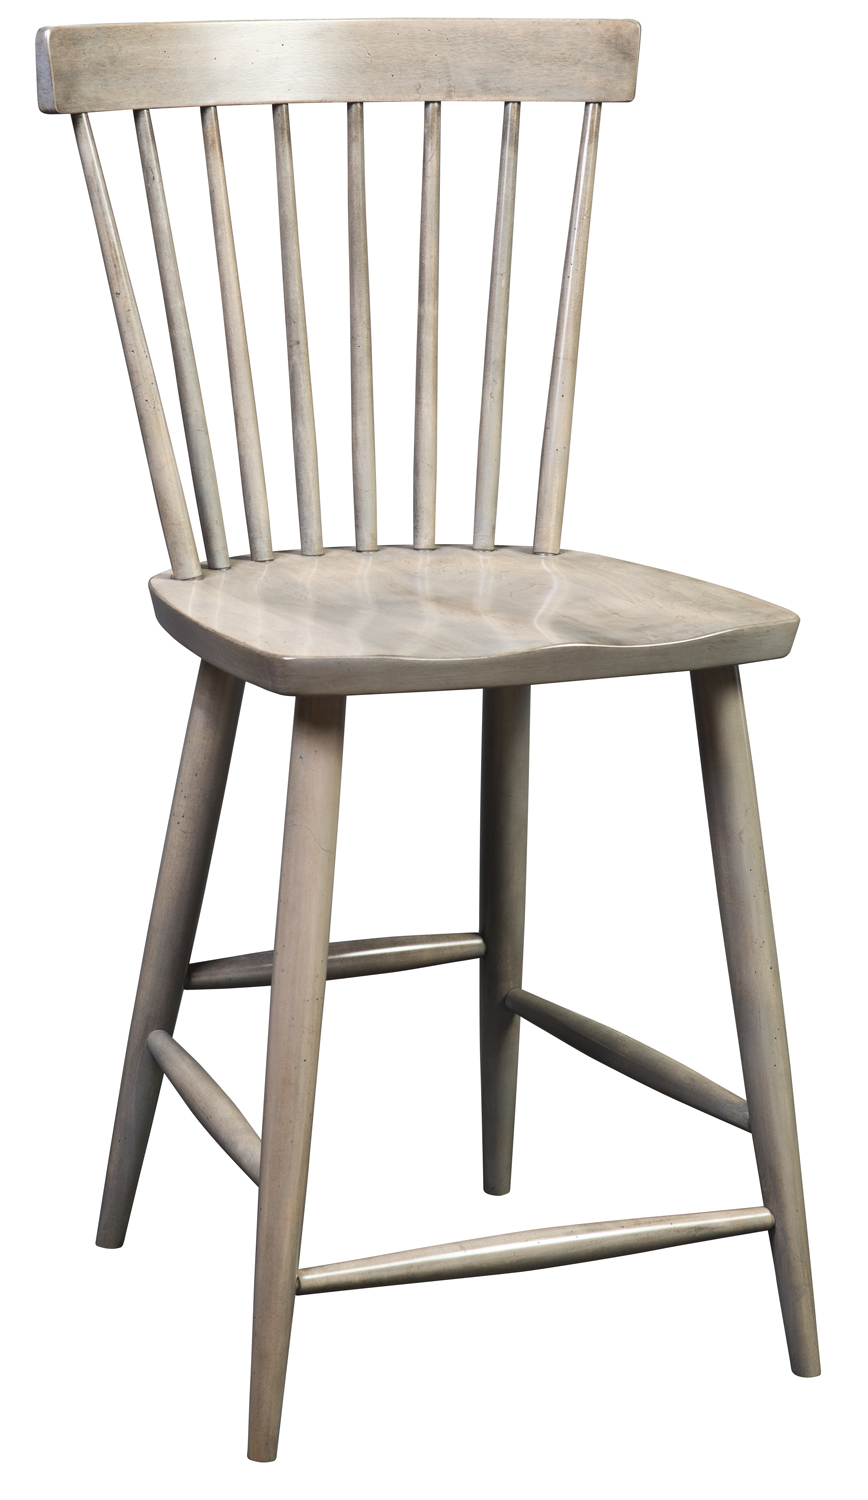 Chicago Stool Image